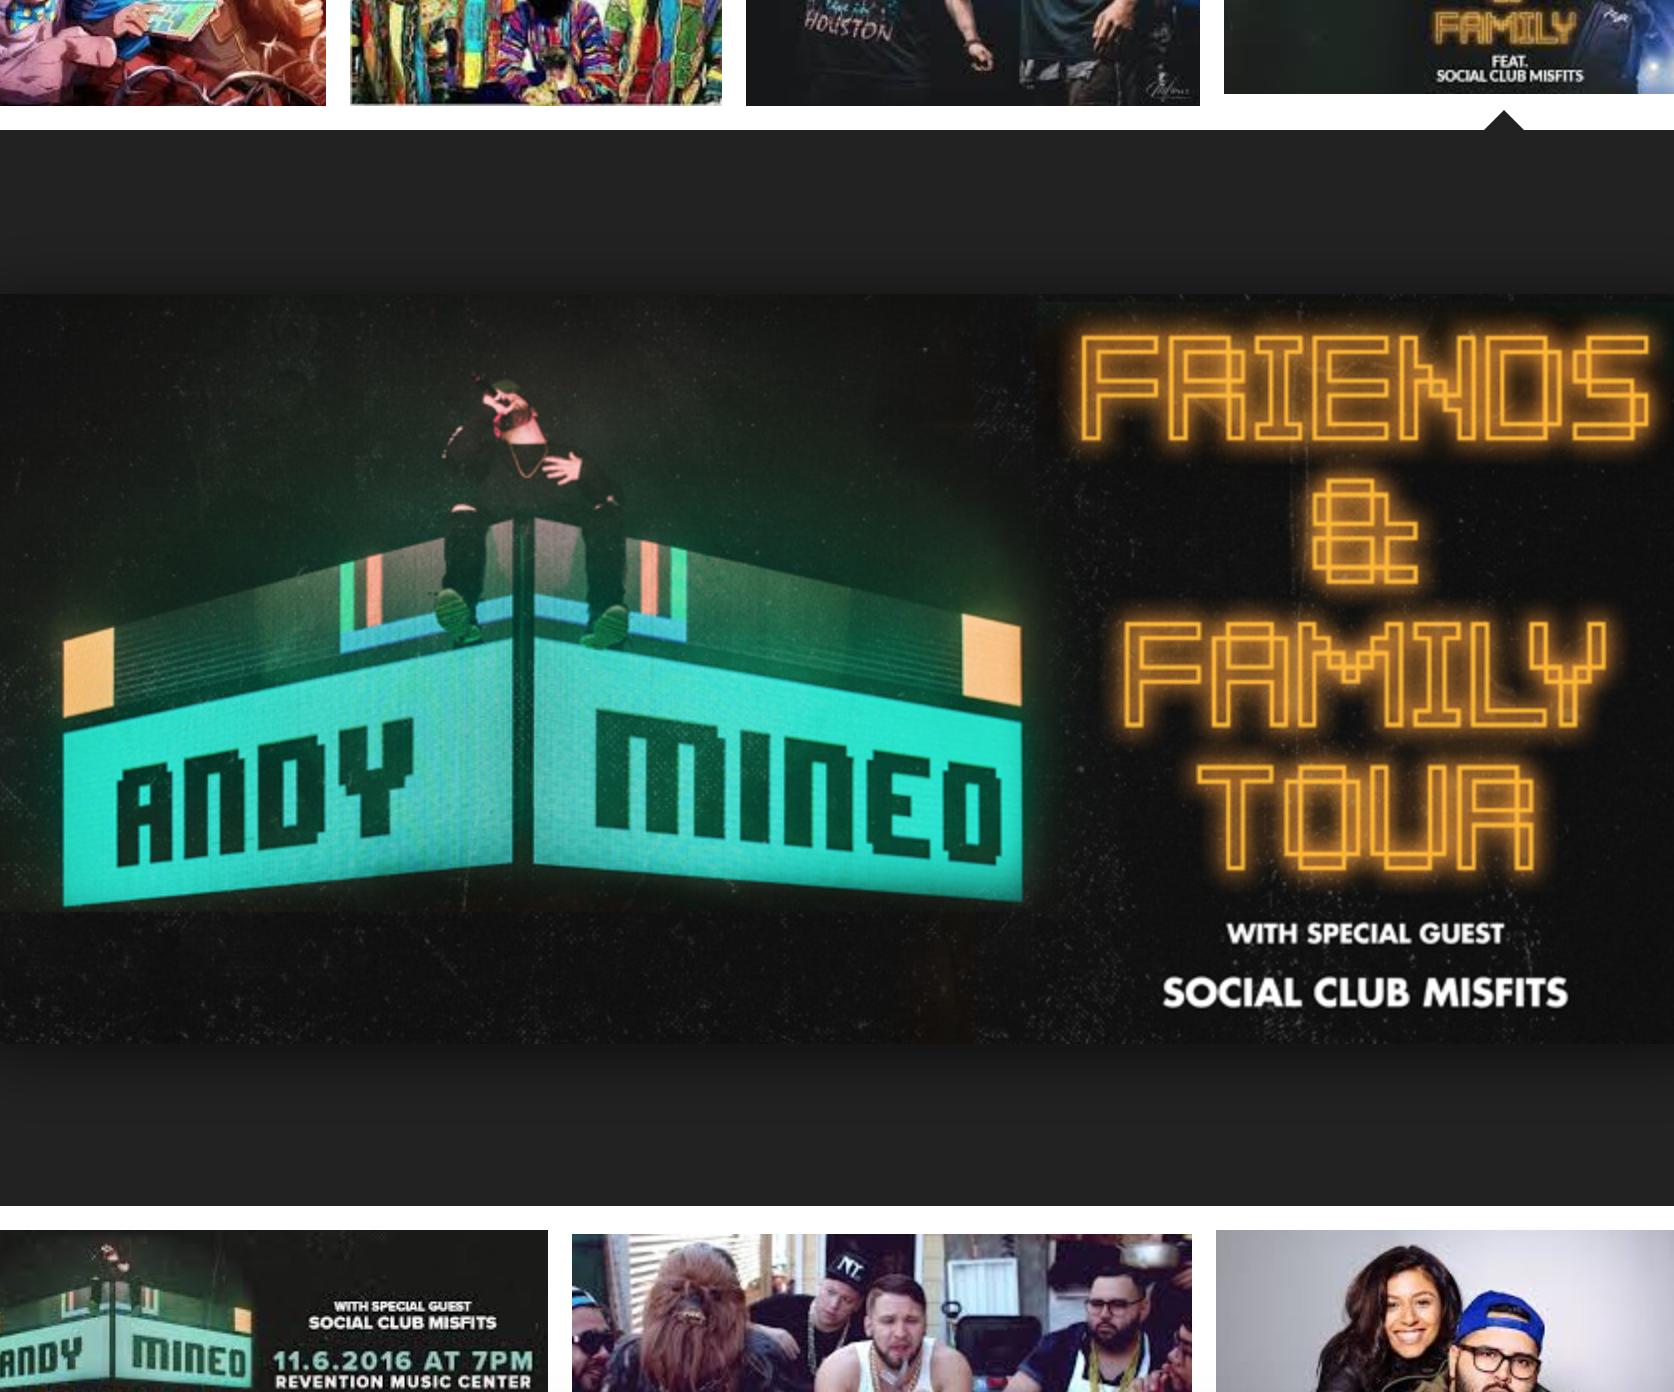 Andy Mineo - Friends & Family Tour - World Vision Volunteer - Albuquerque, NM